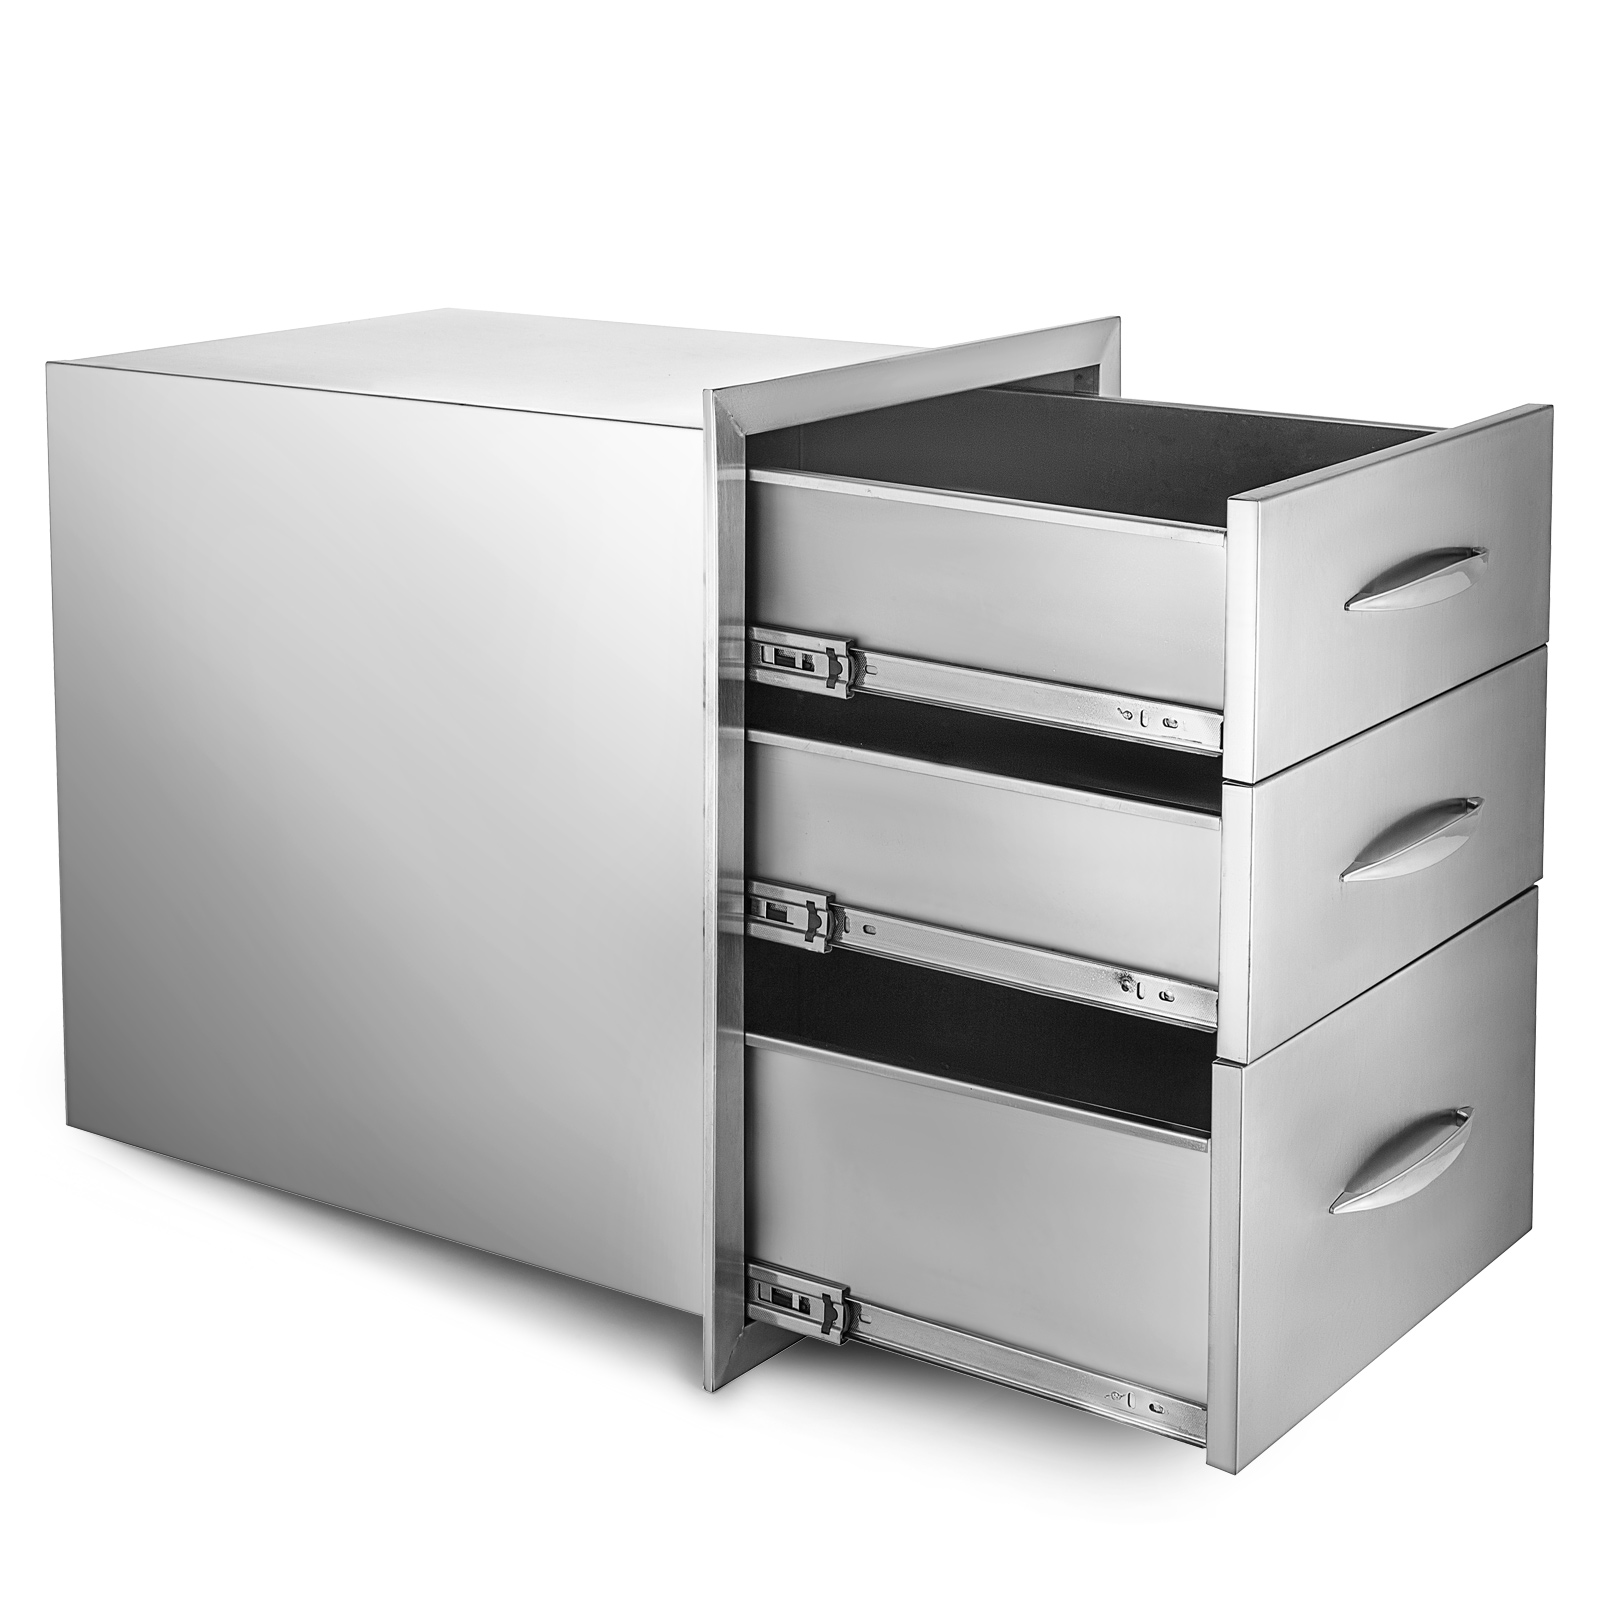 BBQ Triple Drawer 46 X 59 CM Built-In 3 Drawers Outdoor ...